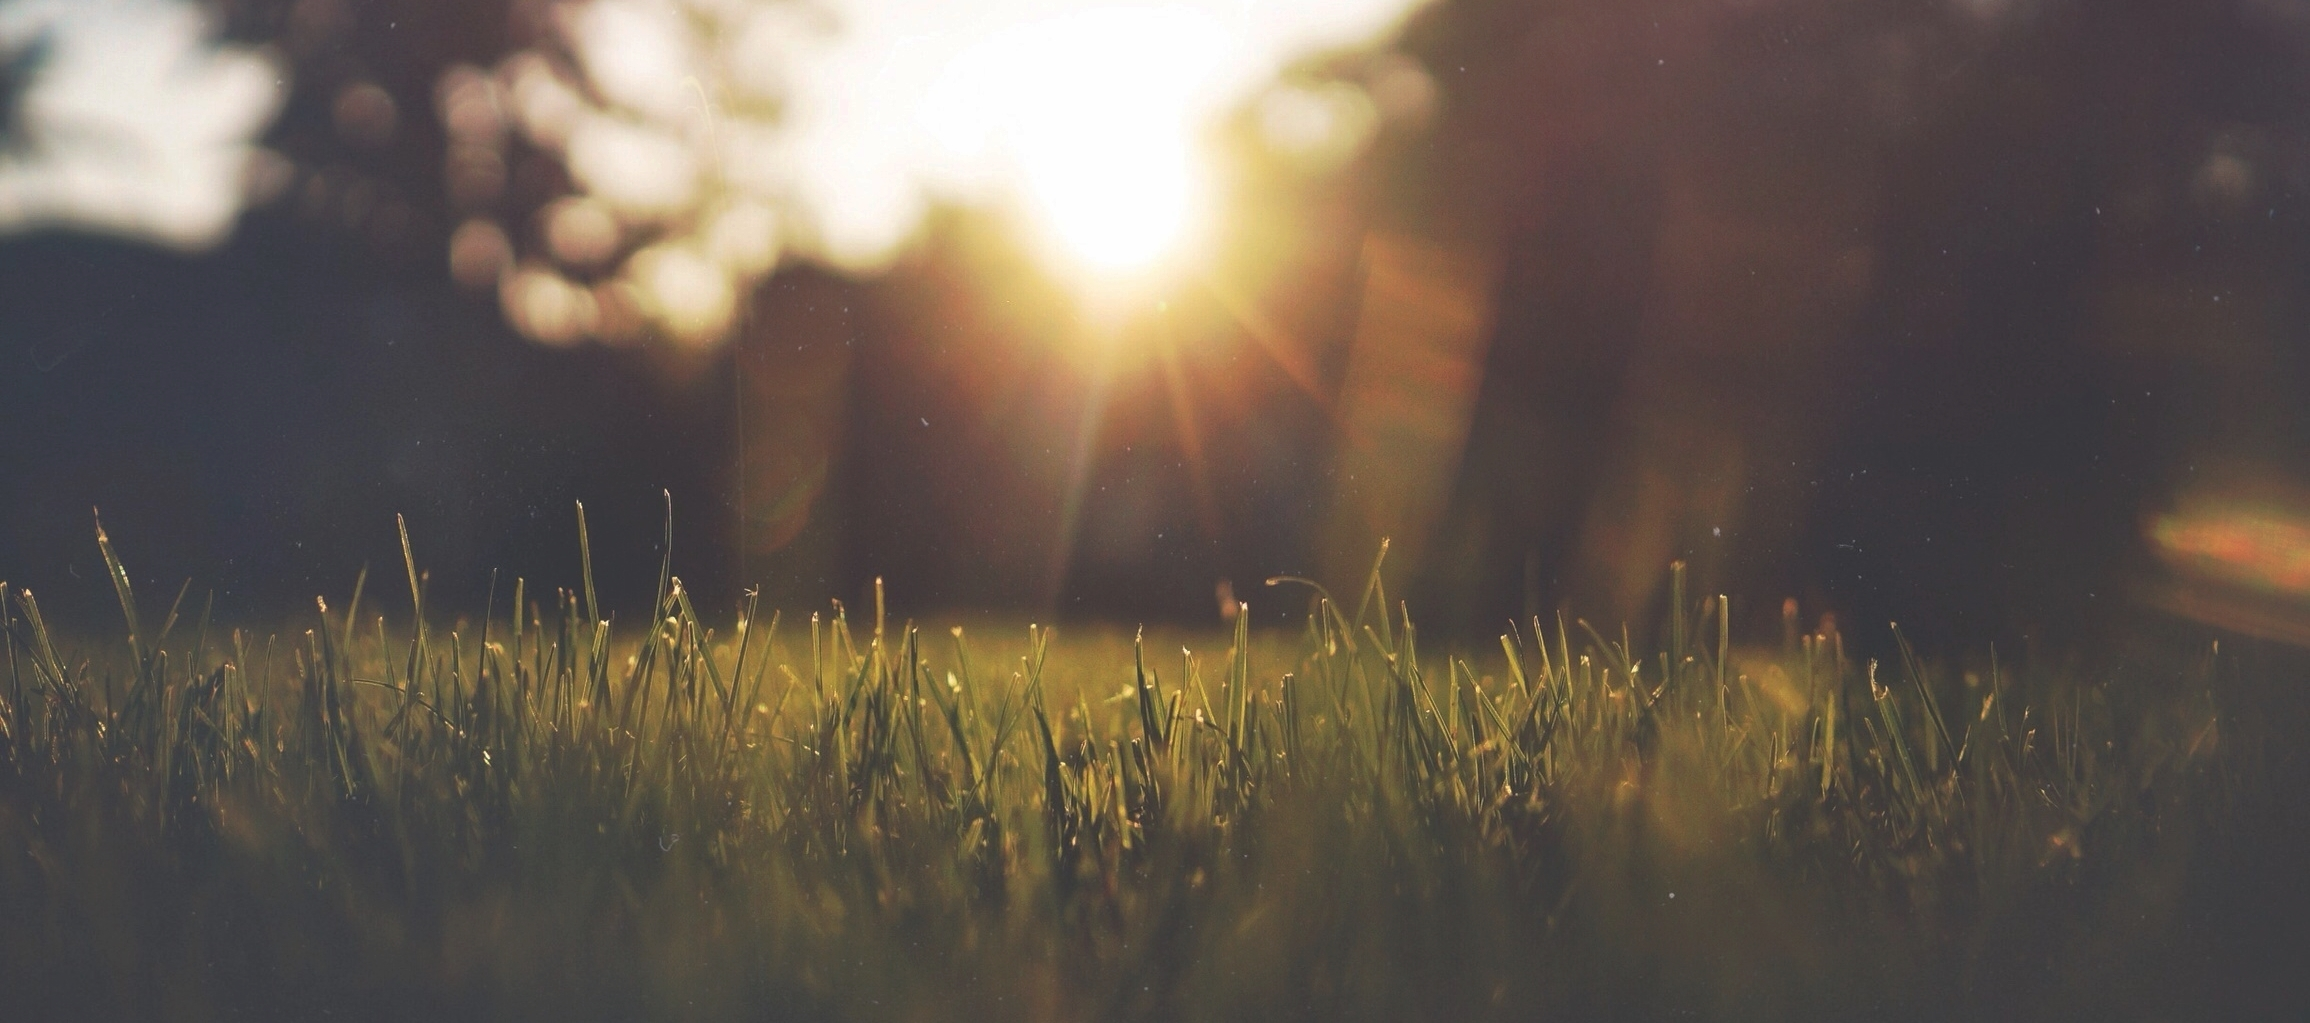 The Grass Is Greener   Switch your lawn maintenance contract to us and we're certain you'll see the difference.